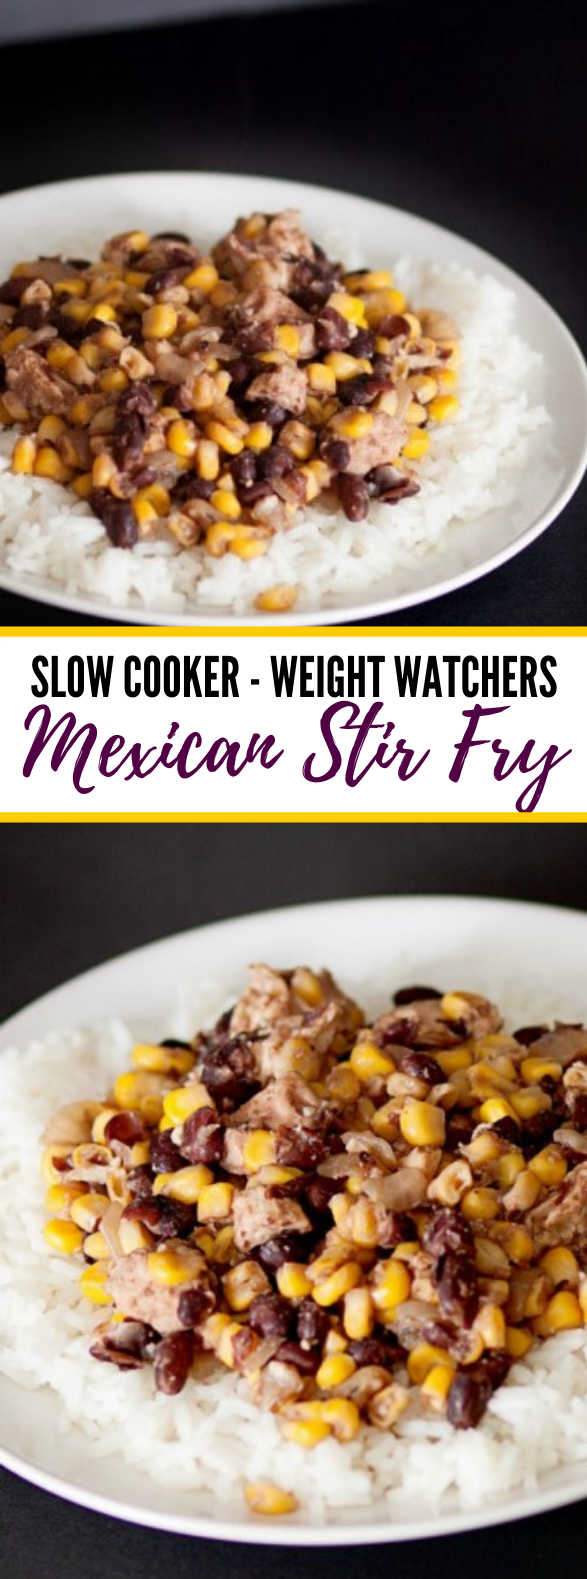 Slow Cooker Mexican Stir Fry #healthy #dinner